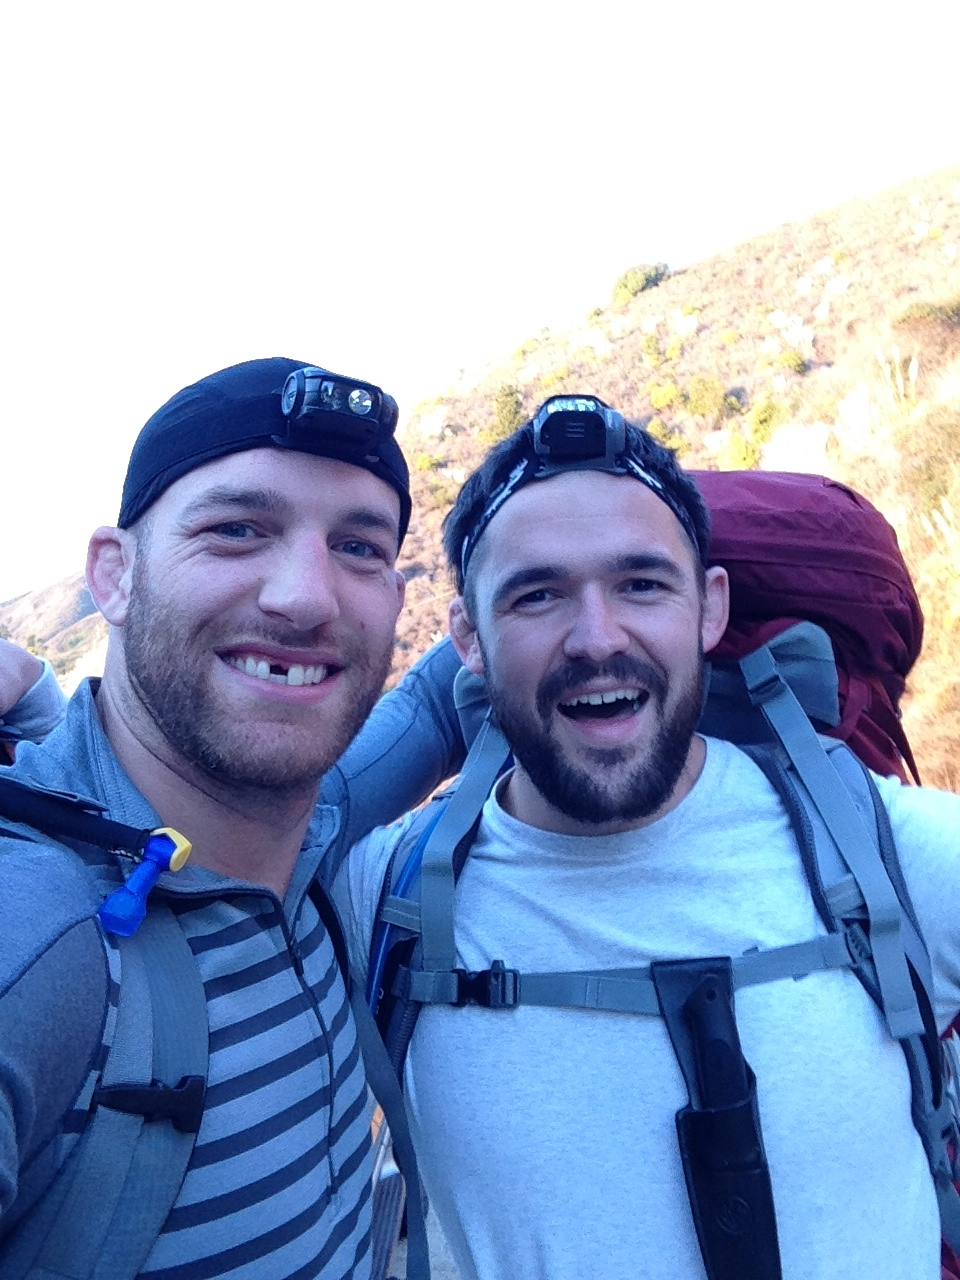 Beards are a must for any wilderness excursion